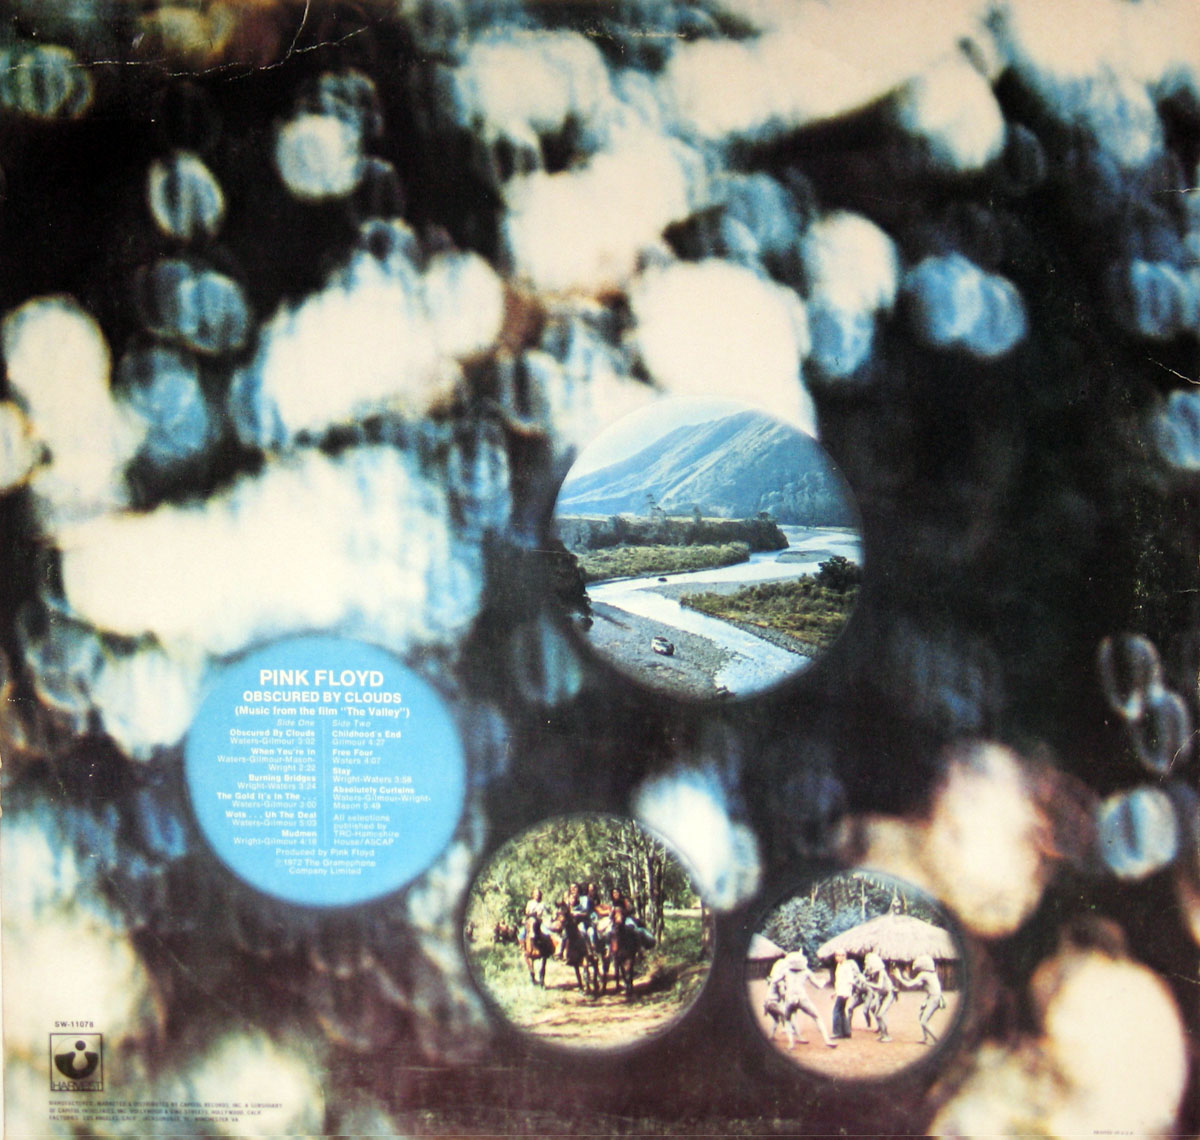 High Resolution Photo #2 PINK FLOYD Obscured Clouds USA